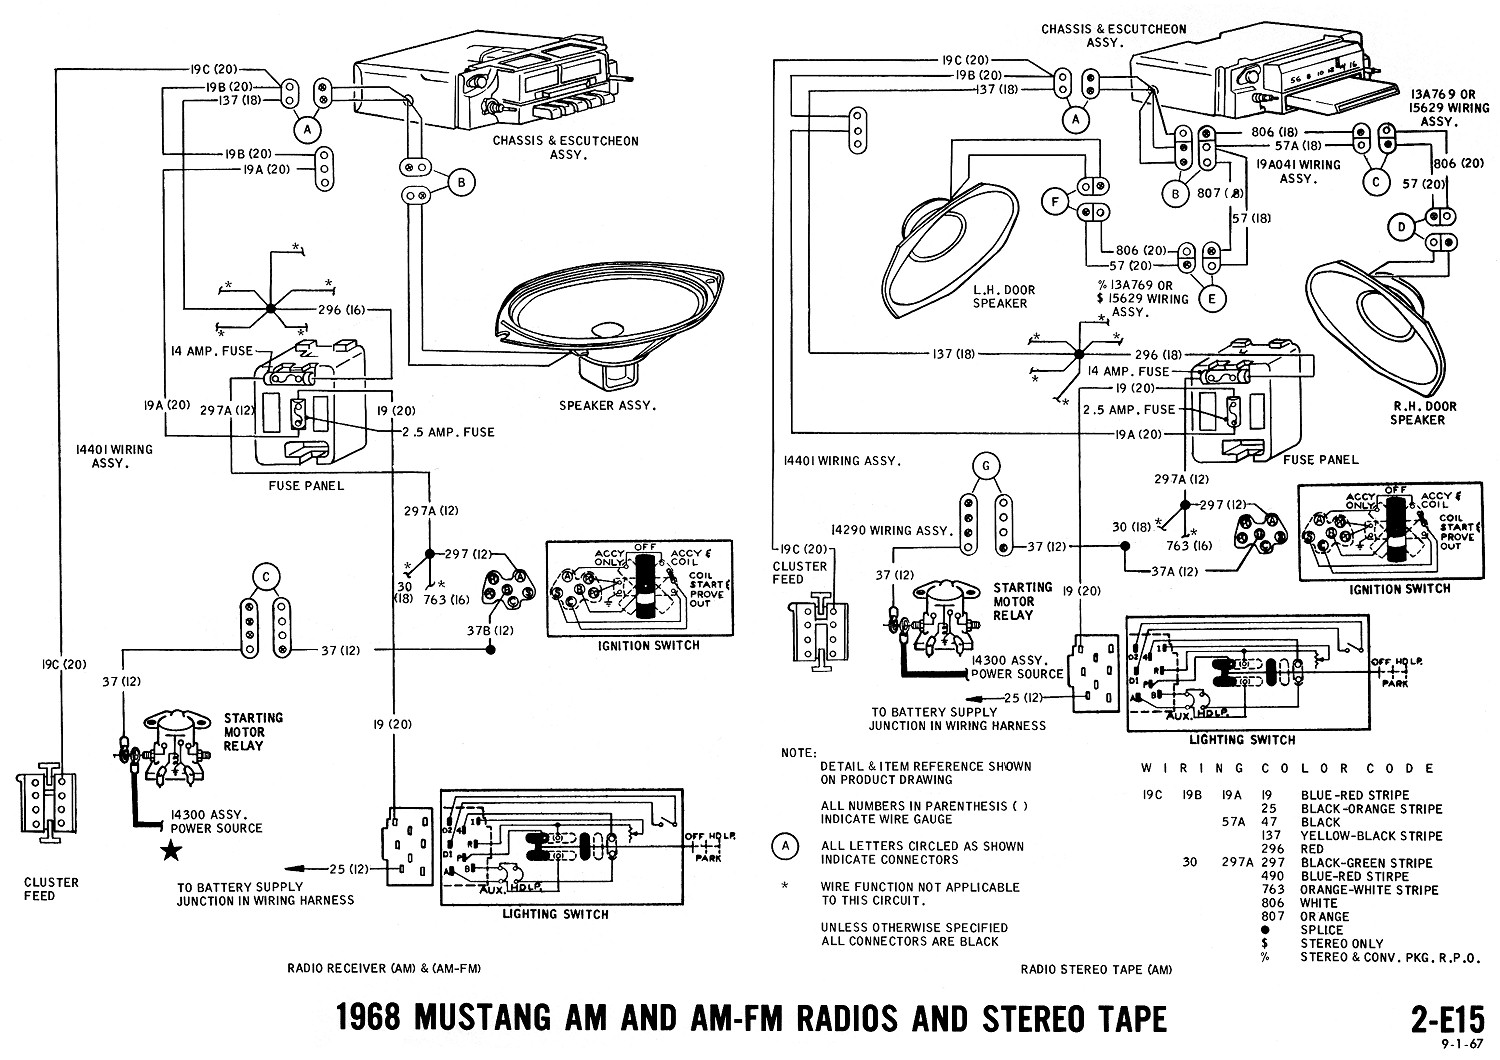 E15 1968 mustang wiring diagrams evolving software 2000 mustang radio wiring diagram at bayanpartner.co